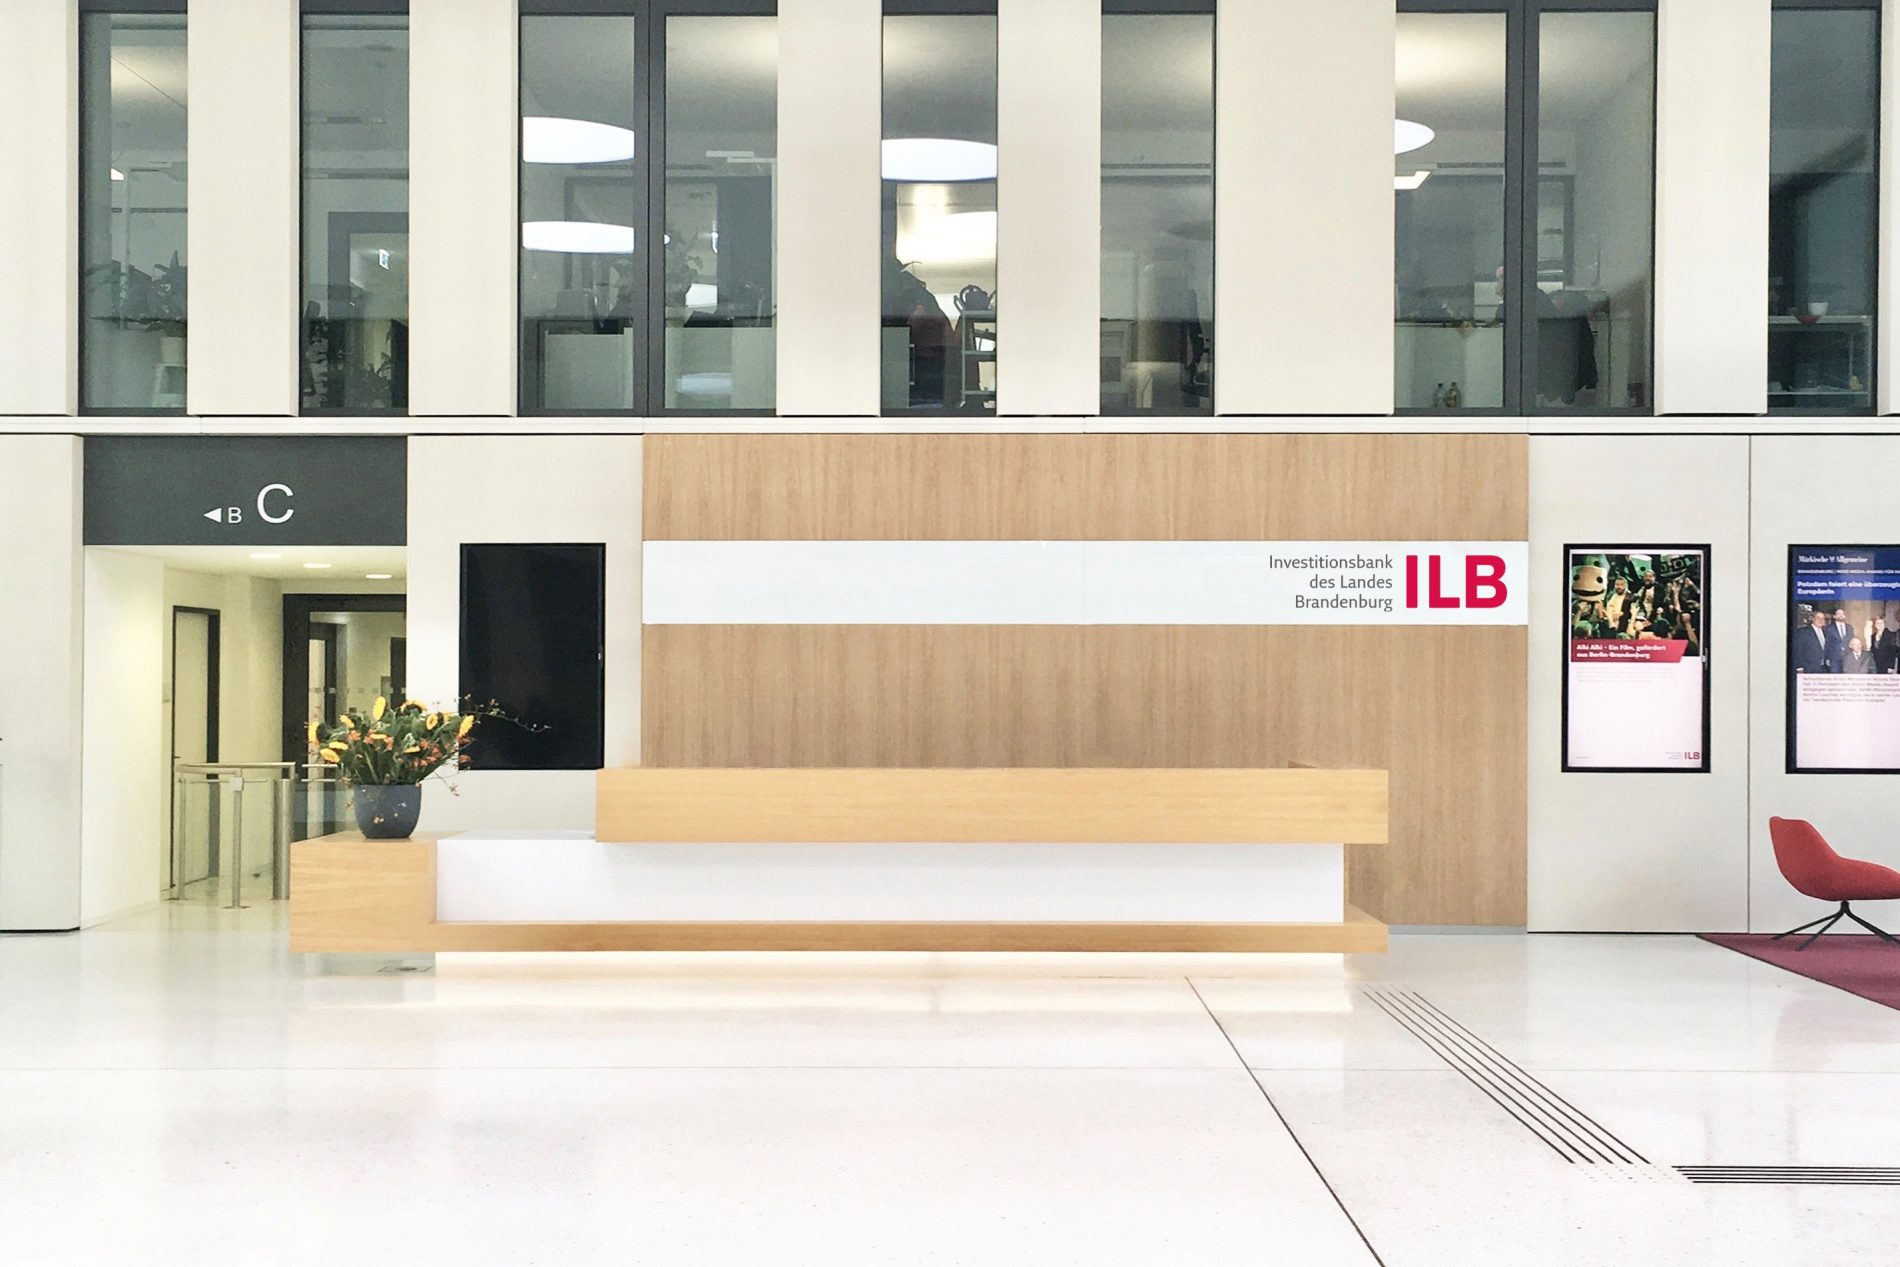 Ksv Ilb Headquarters Interior Design